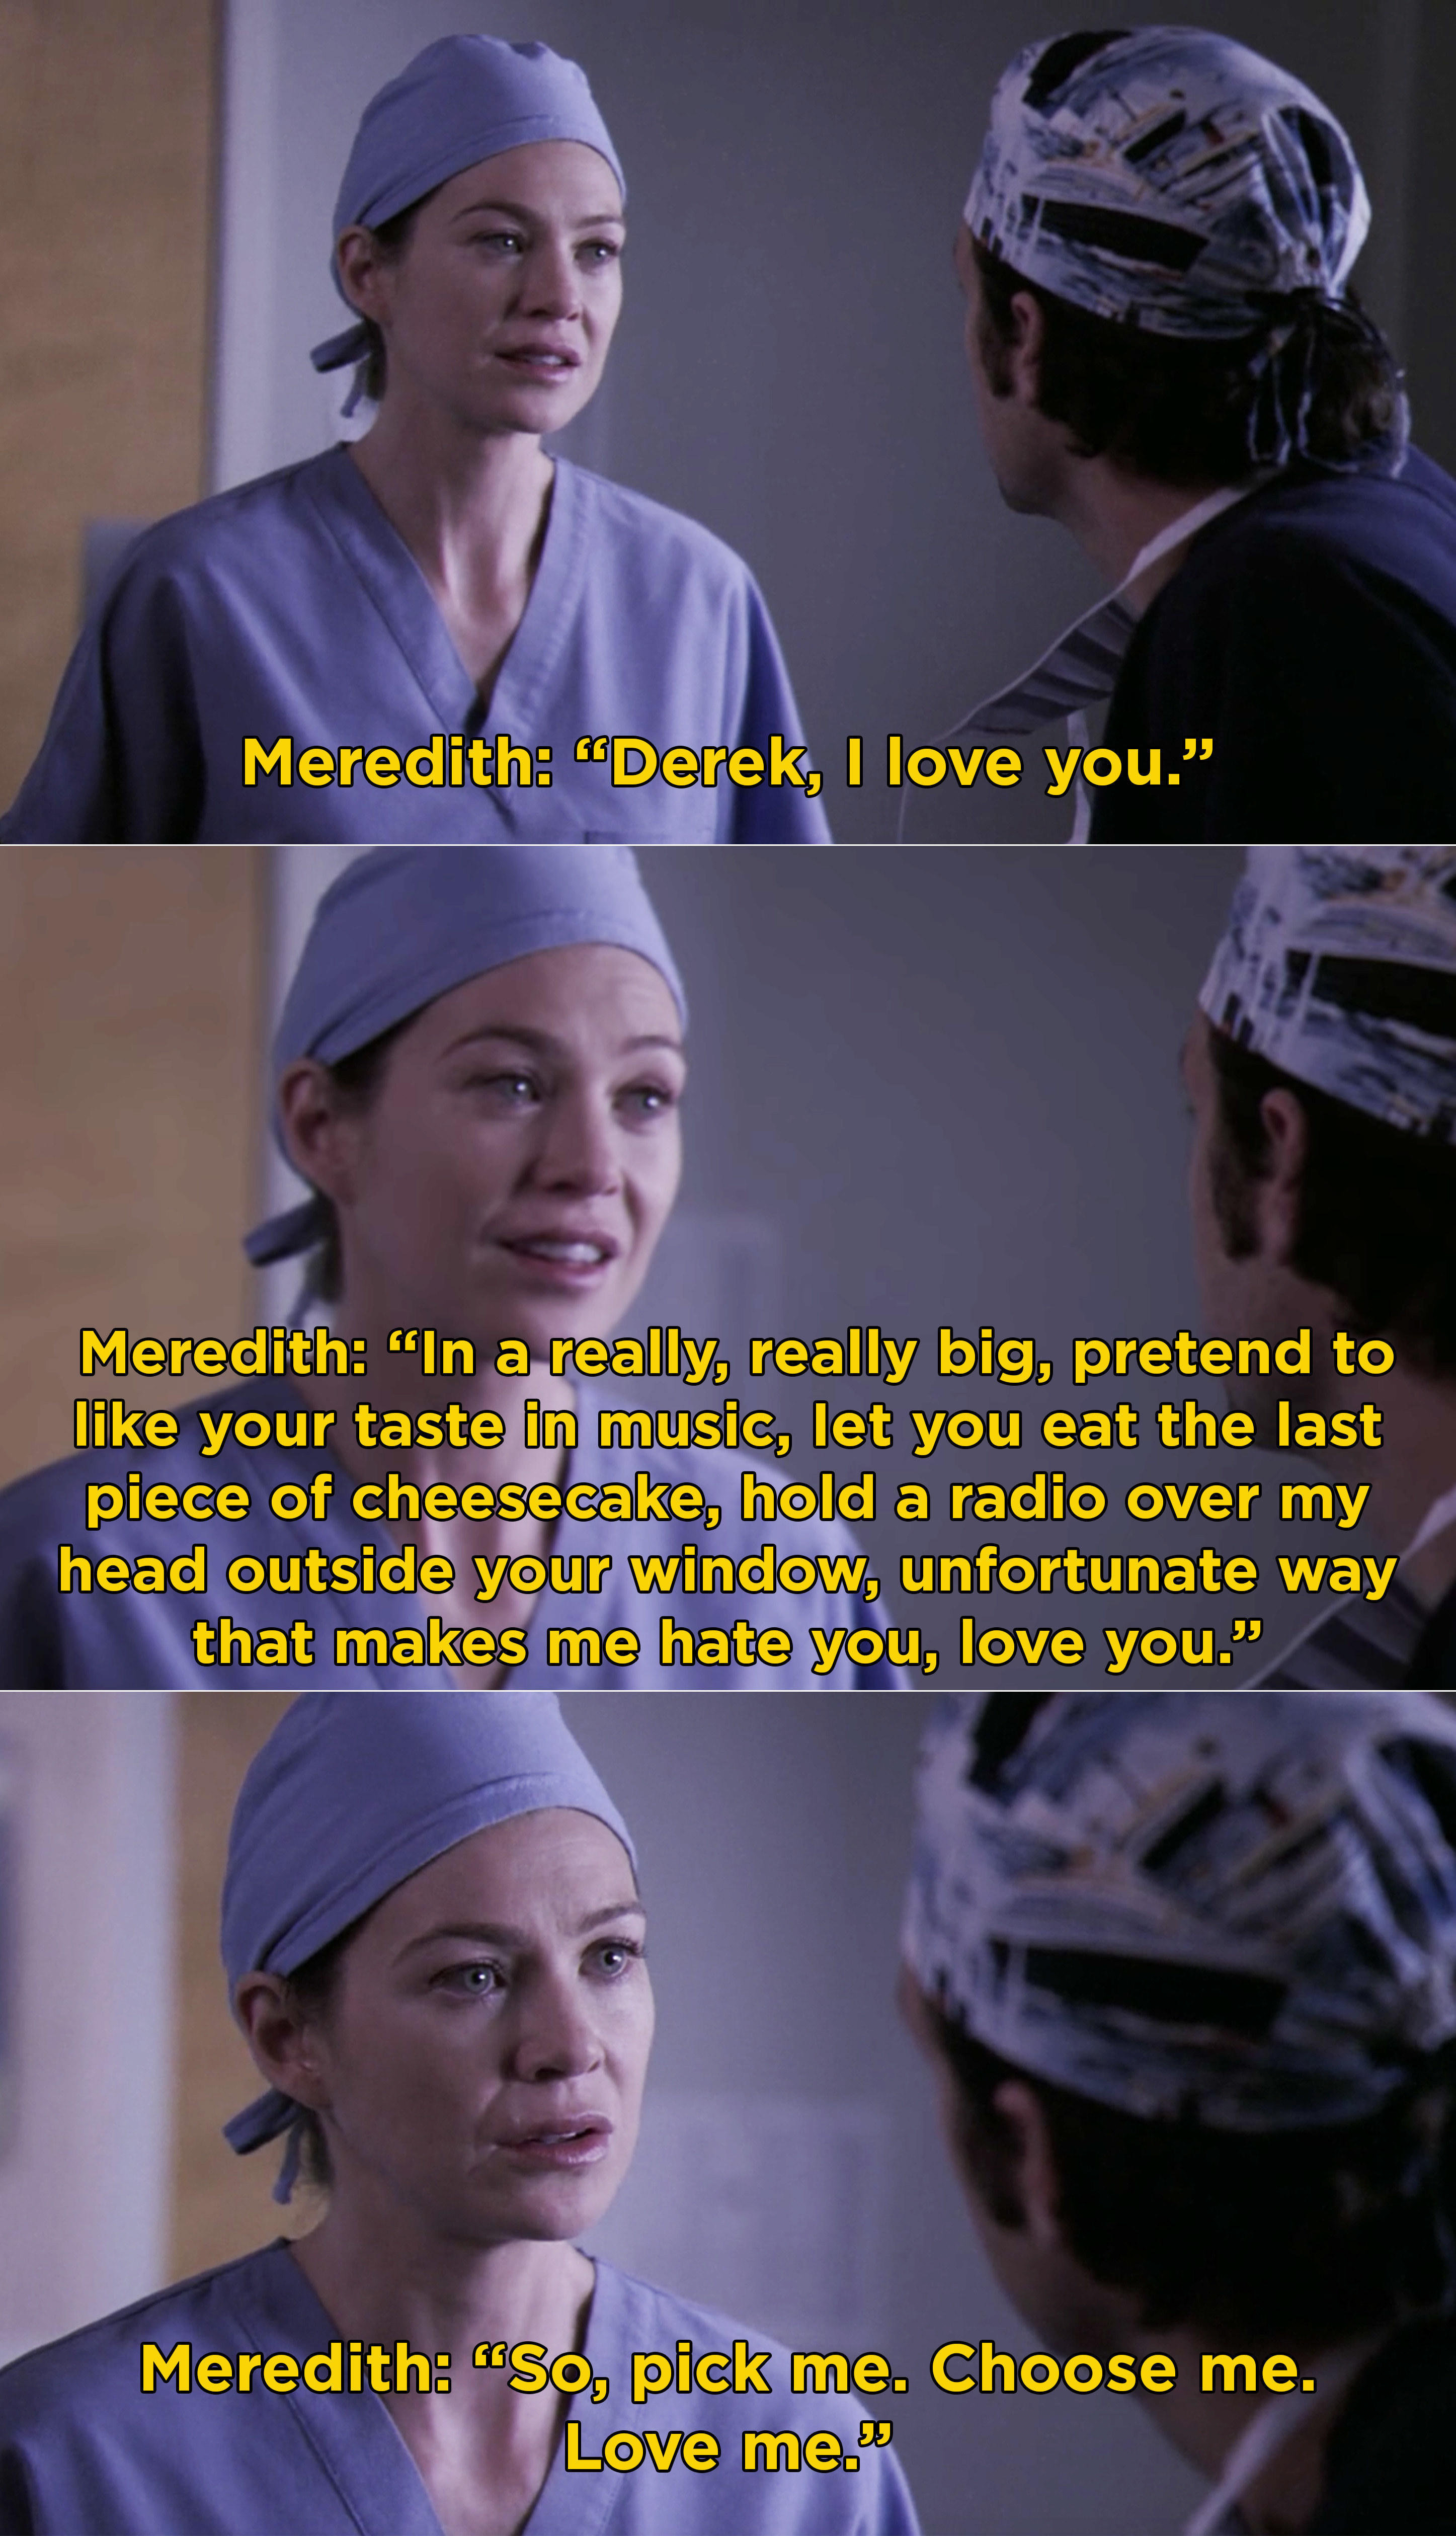 Meredith tells Derek she loves him and to pick her